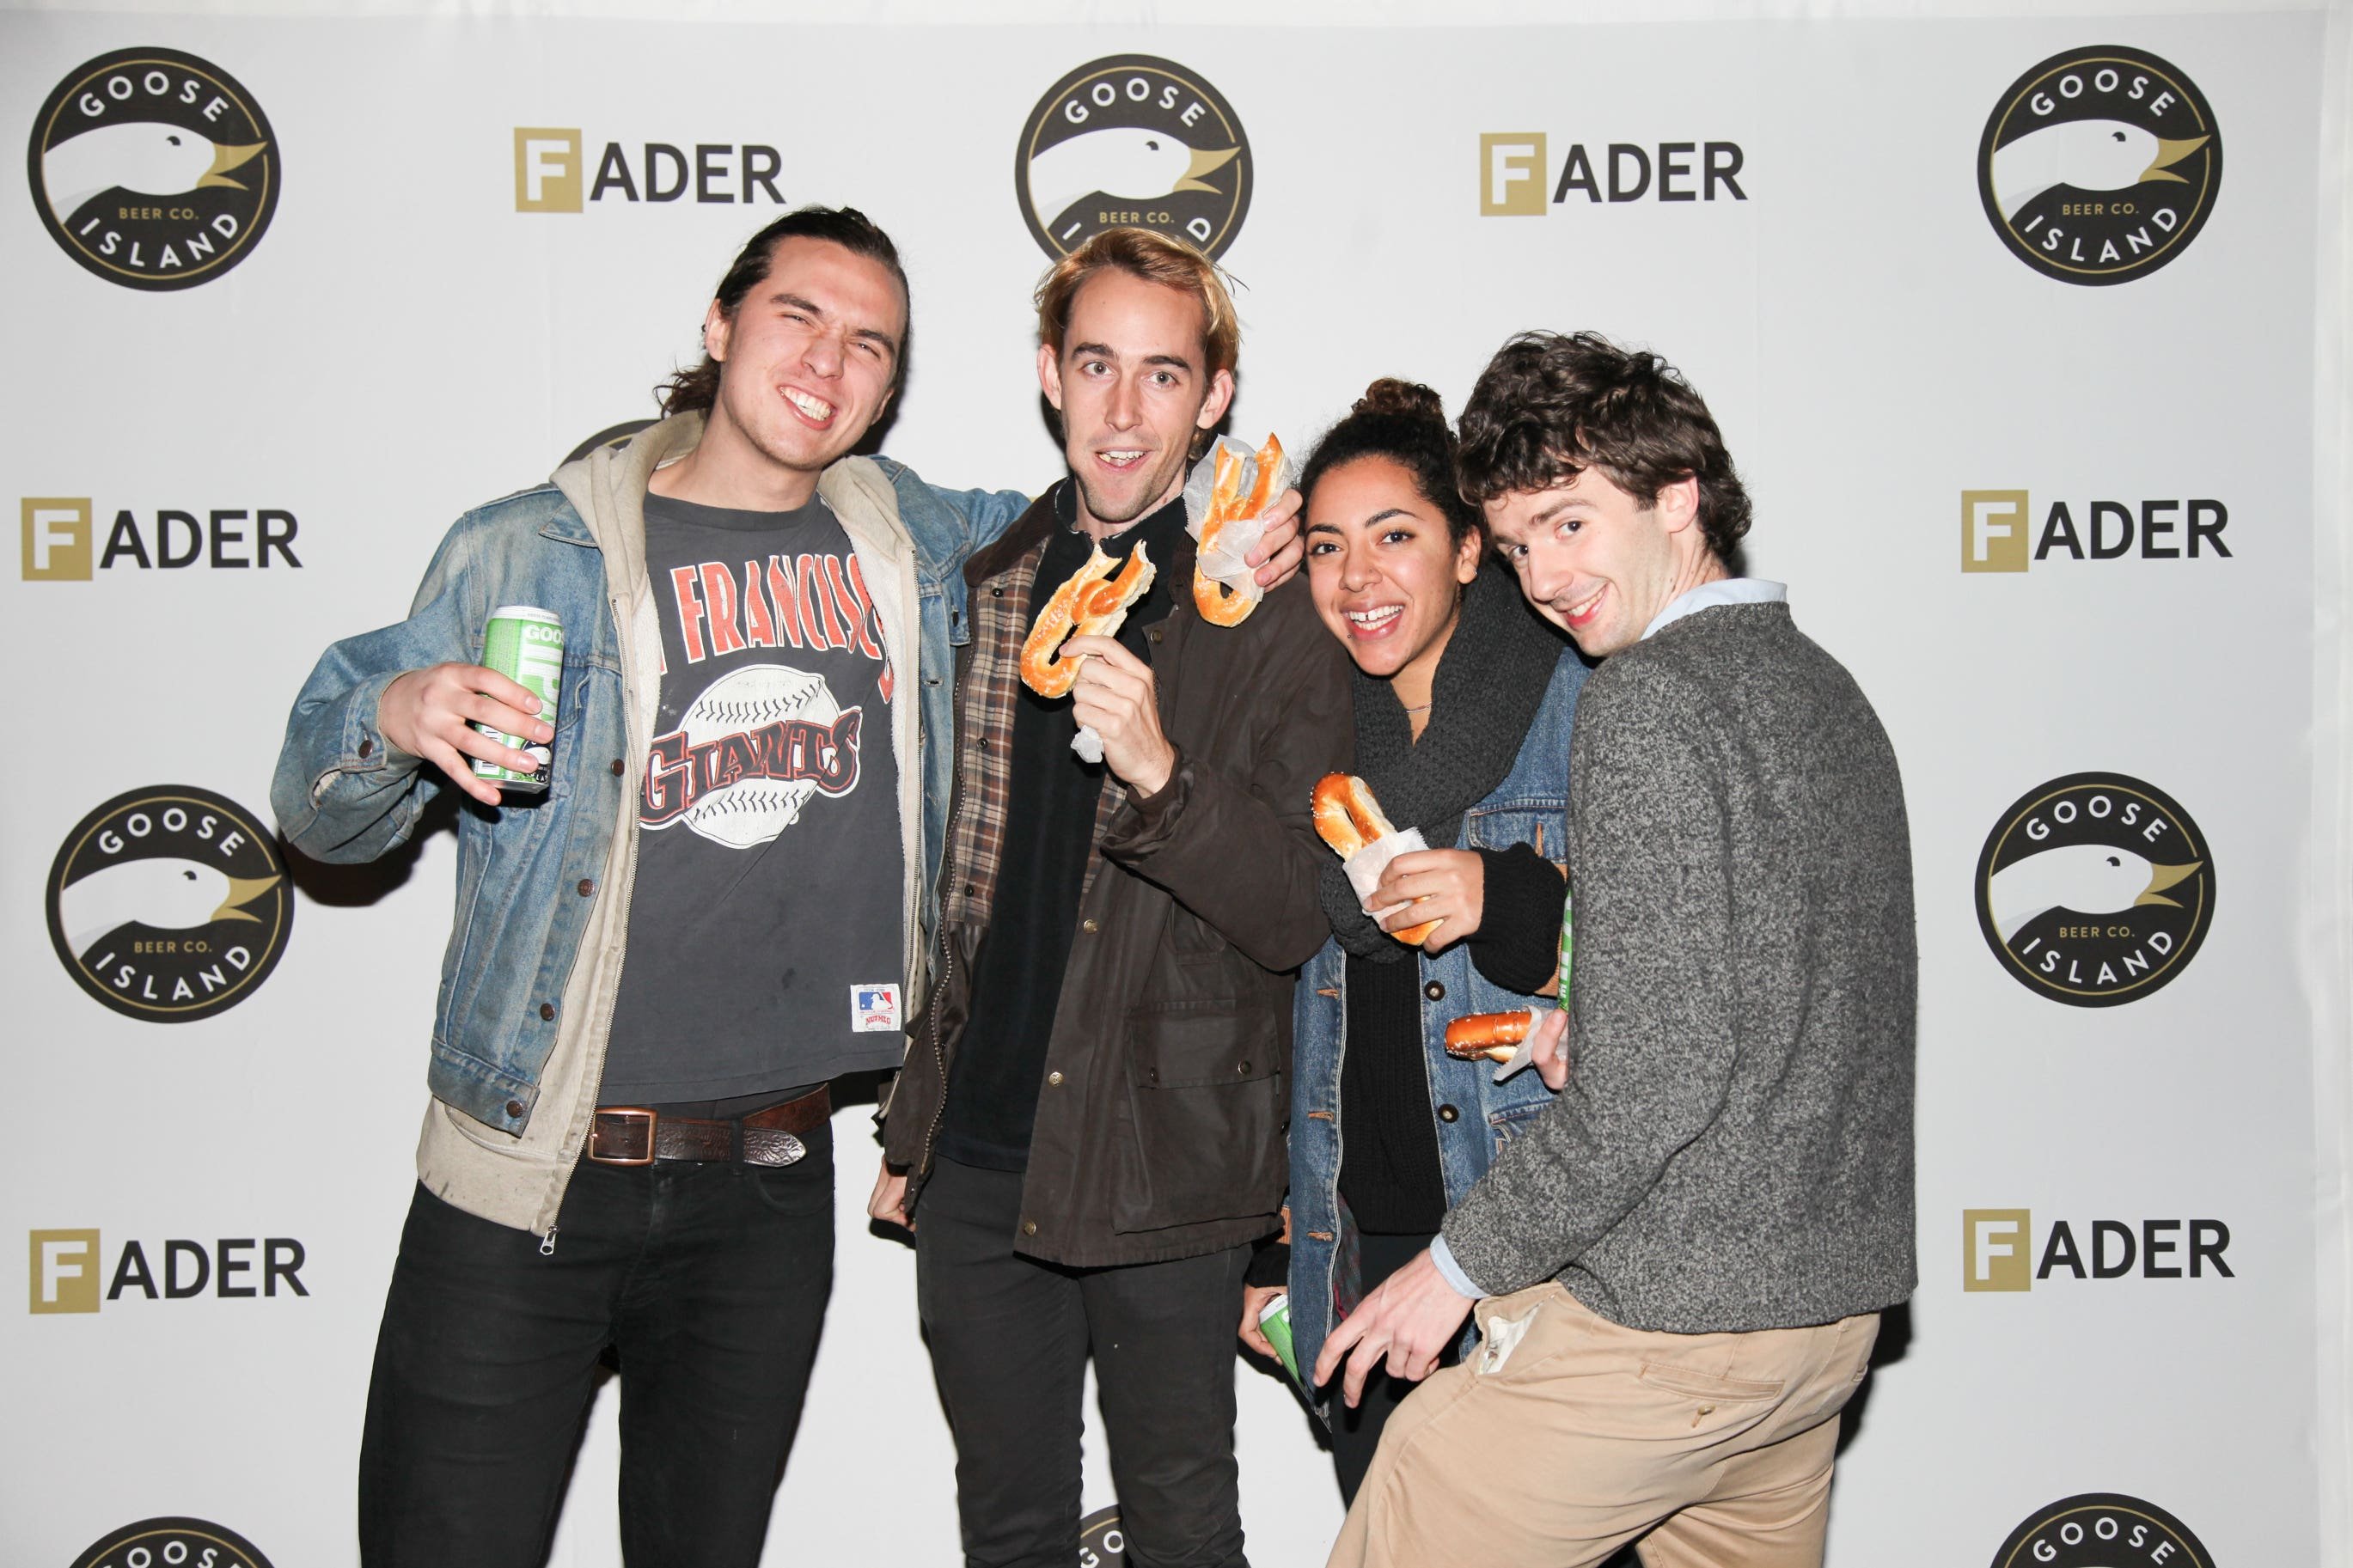 Event Photography for Fader Magazine